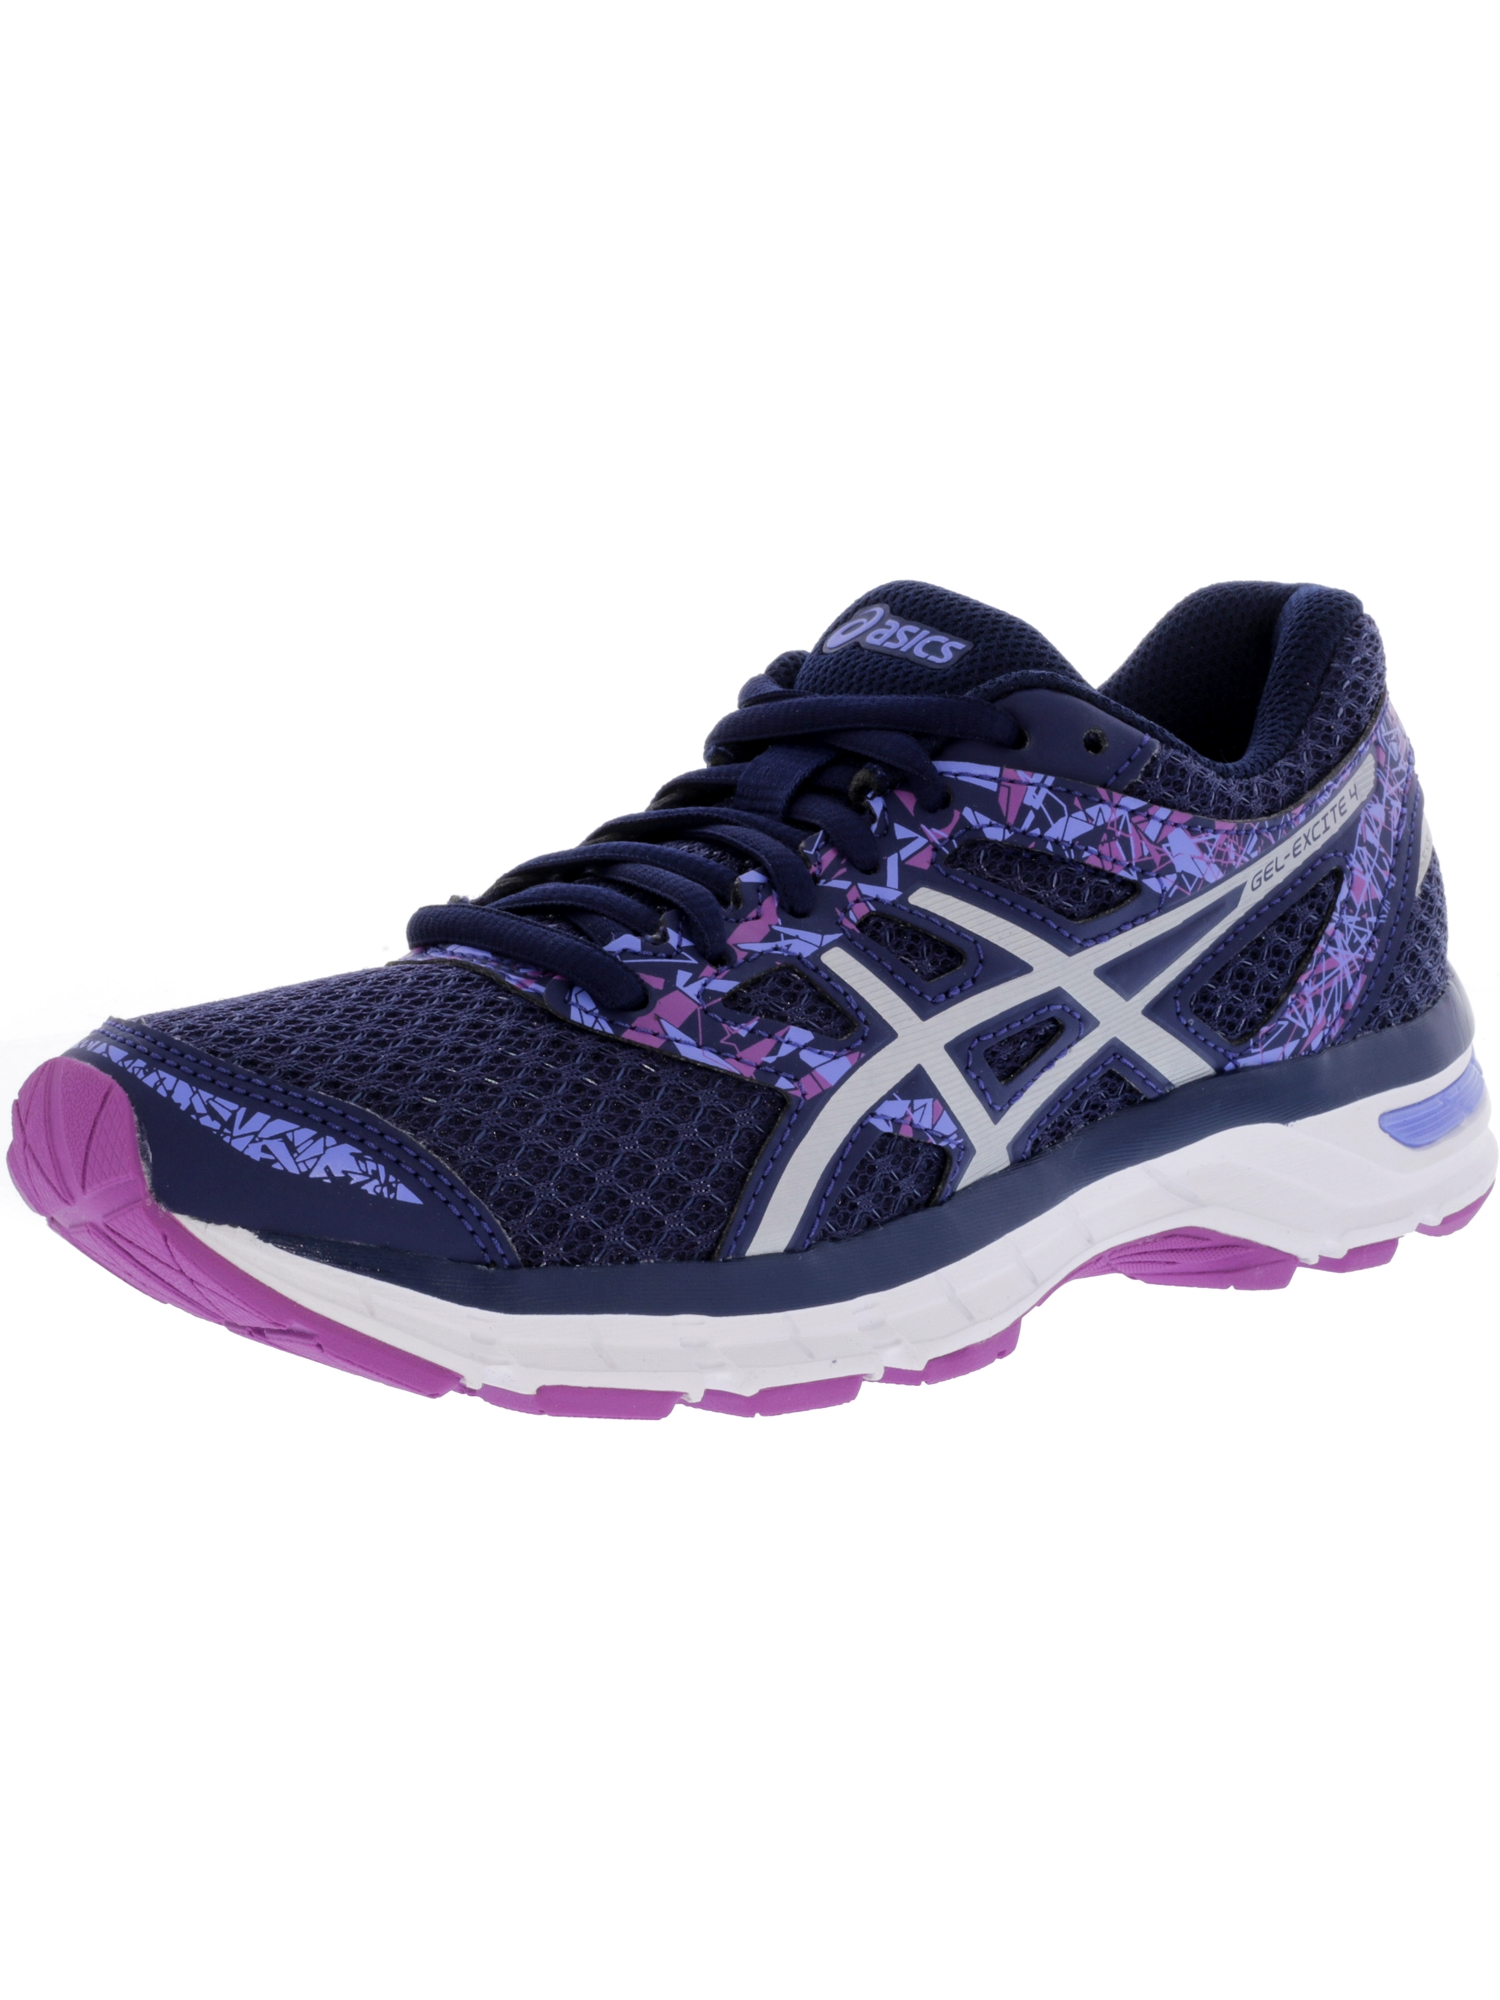 ASICS Asics Women's Gel Excite 4 Indigo Blue Orchid Above the Knee Tennis Shoe 10.5M